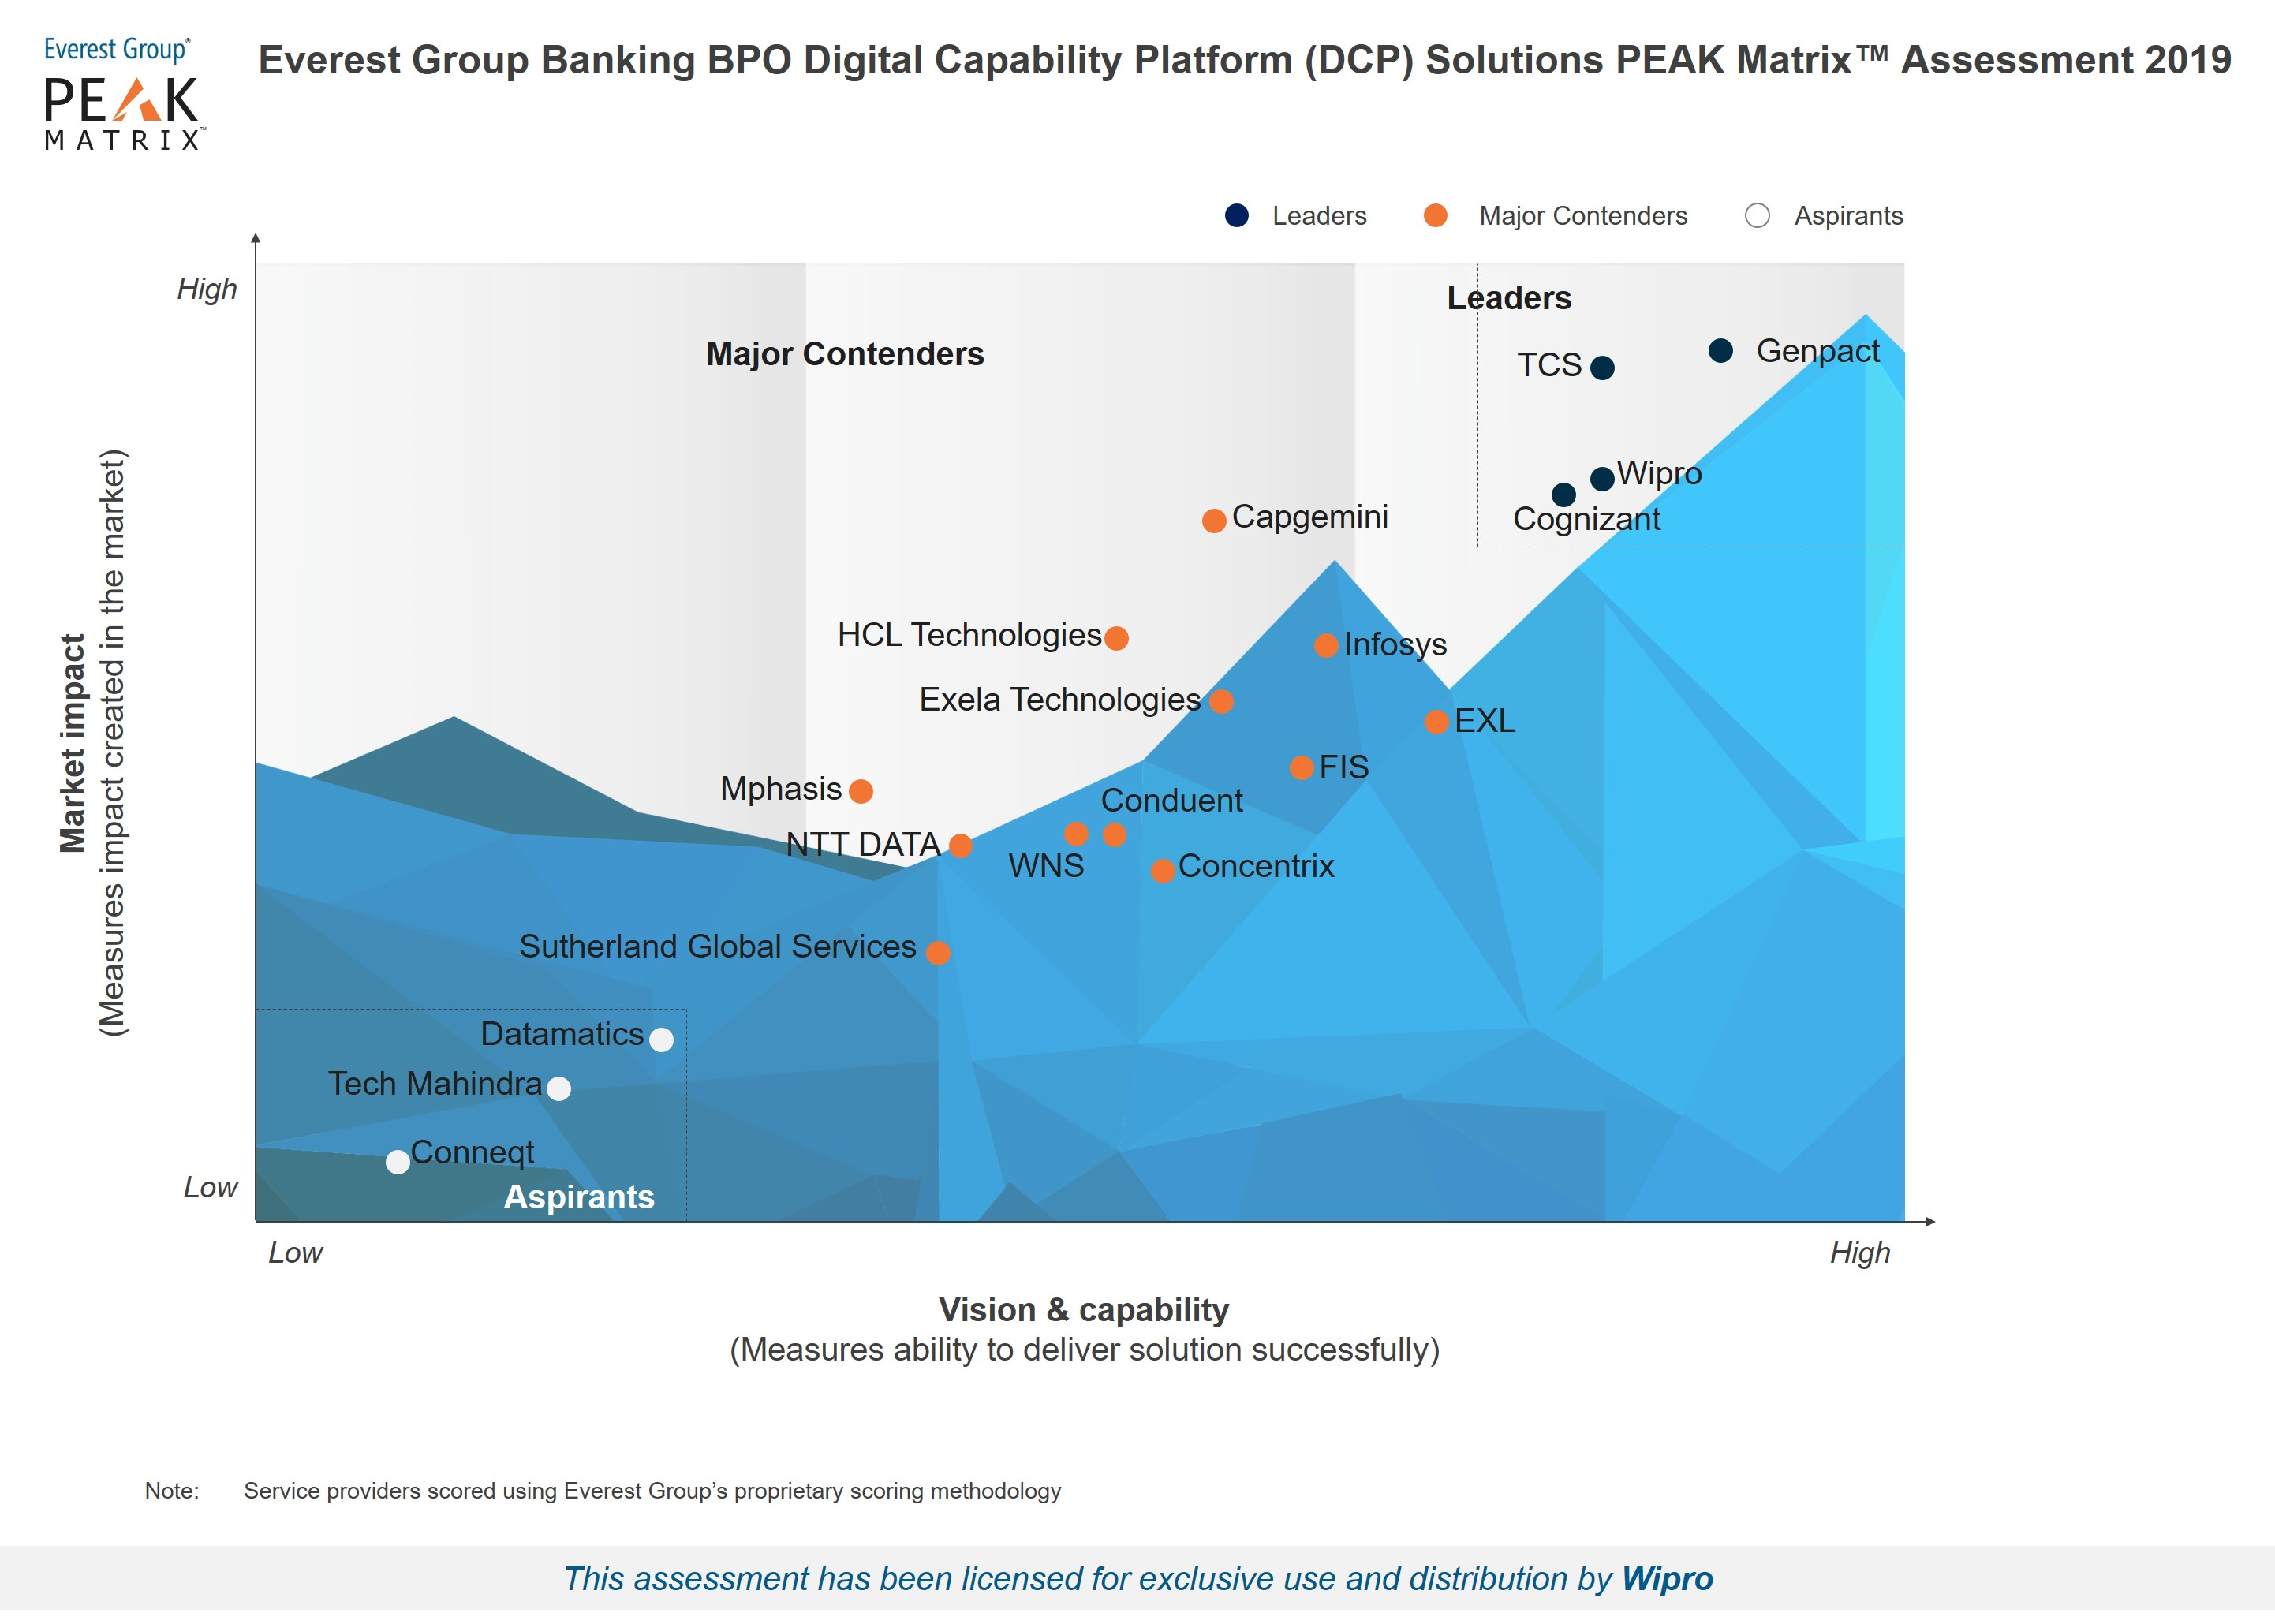 Wipro is a leader in the Banking BPO Digital Capability Platform (DCP) - Service Provider Landscape with Solutions PEAK Matrix™ Assessment 2019